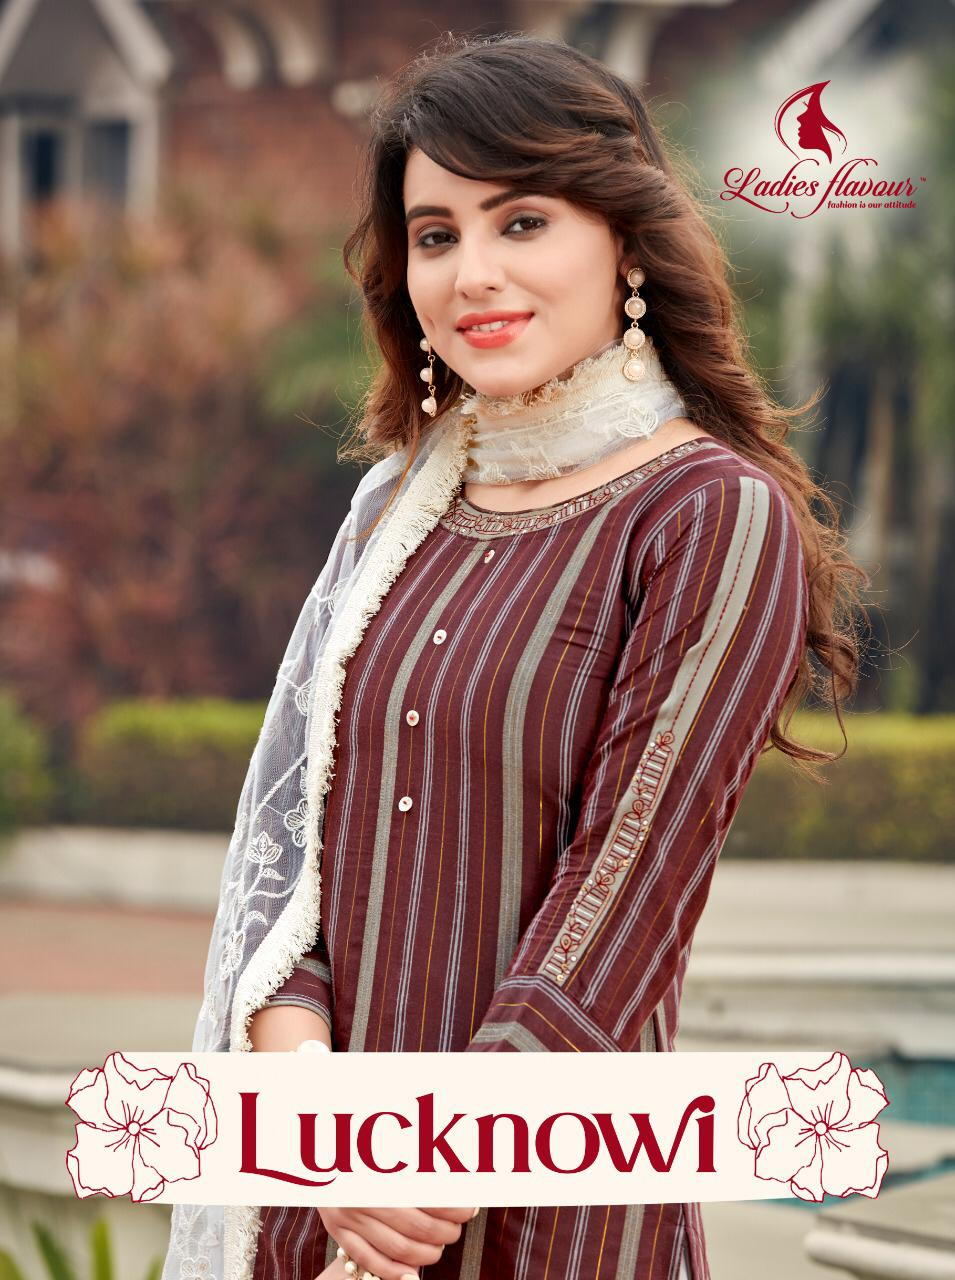 Ladies Flavour Lucknowi Designer Rayon Lurex with Embroidery Work  Kurti Catalog at Wholesale rate